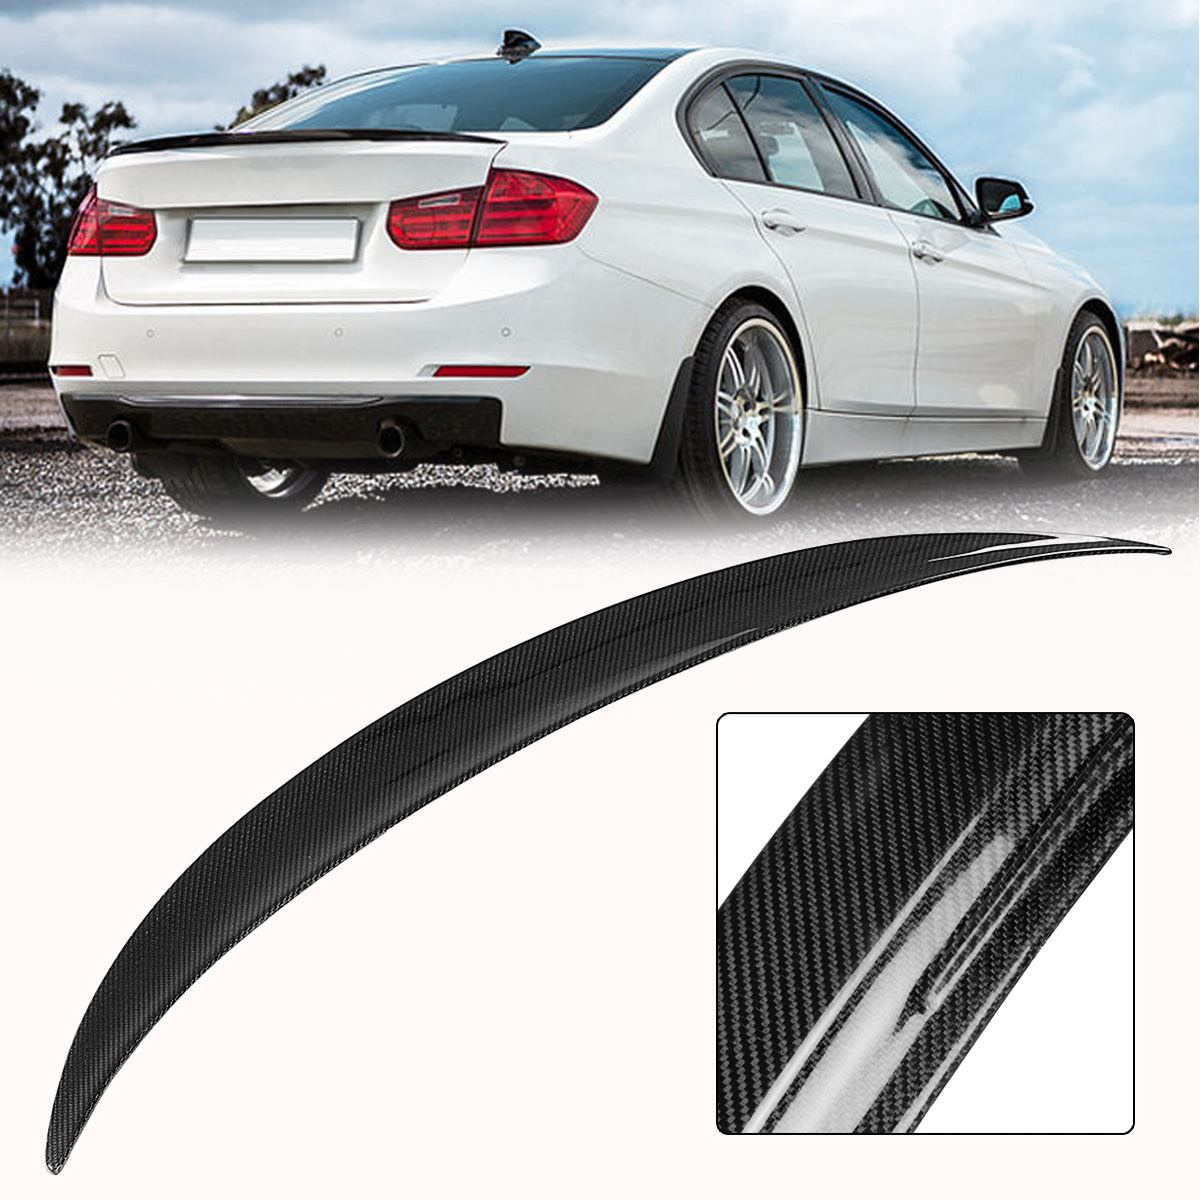 High quality Carbon Fiber Gloss Black Rear Trunk Spoiler Wings Trunk Lip For 12-Up For BMW F30 3-Series 4Dr Performance Style f26 suv rear trunk lip genuine carbon fiber gloss black back wings spoiler for bmw x4 2014 xdrive20i xdrive28i xdrive35i